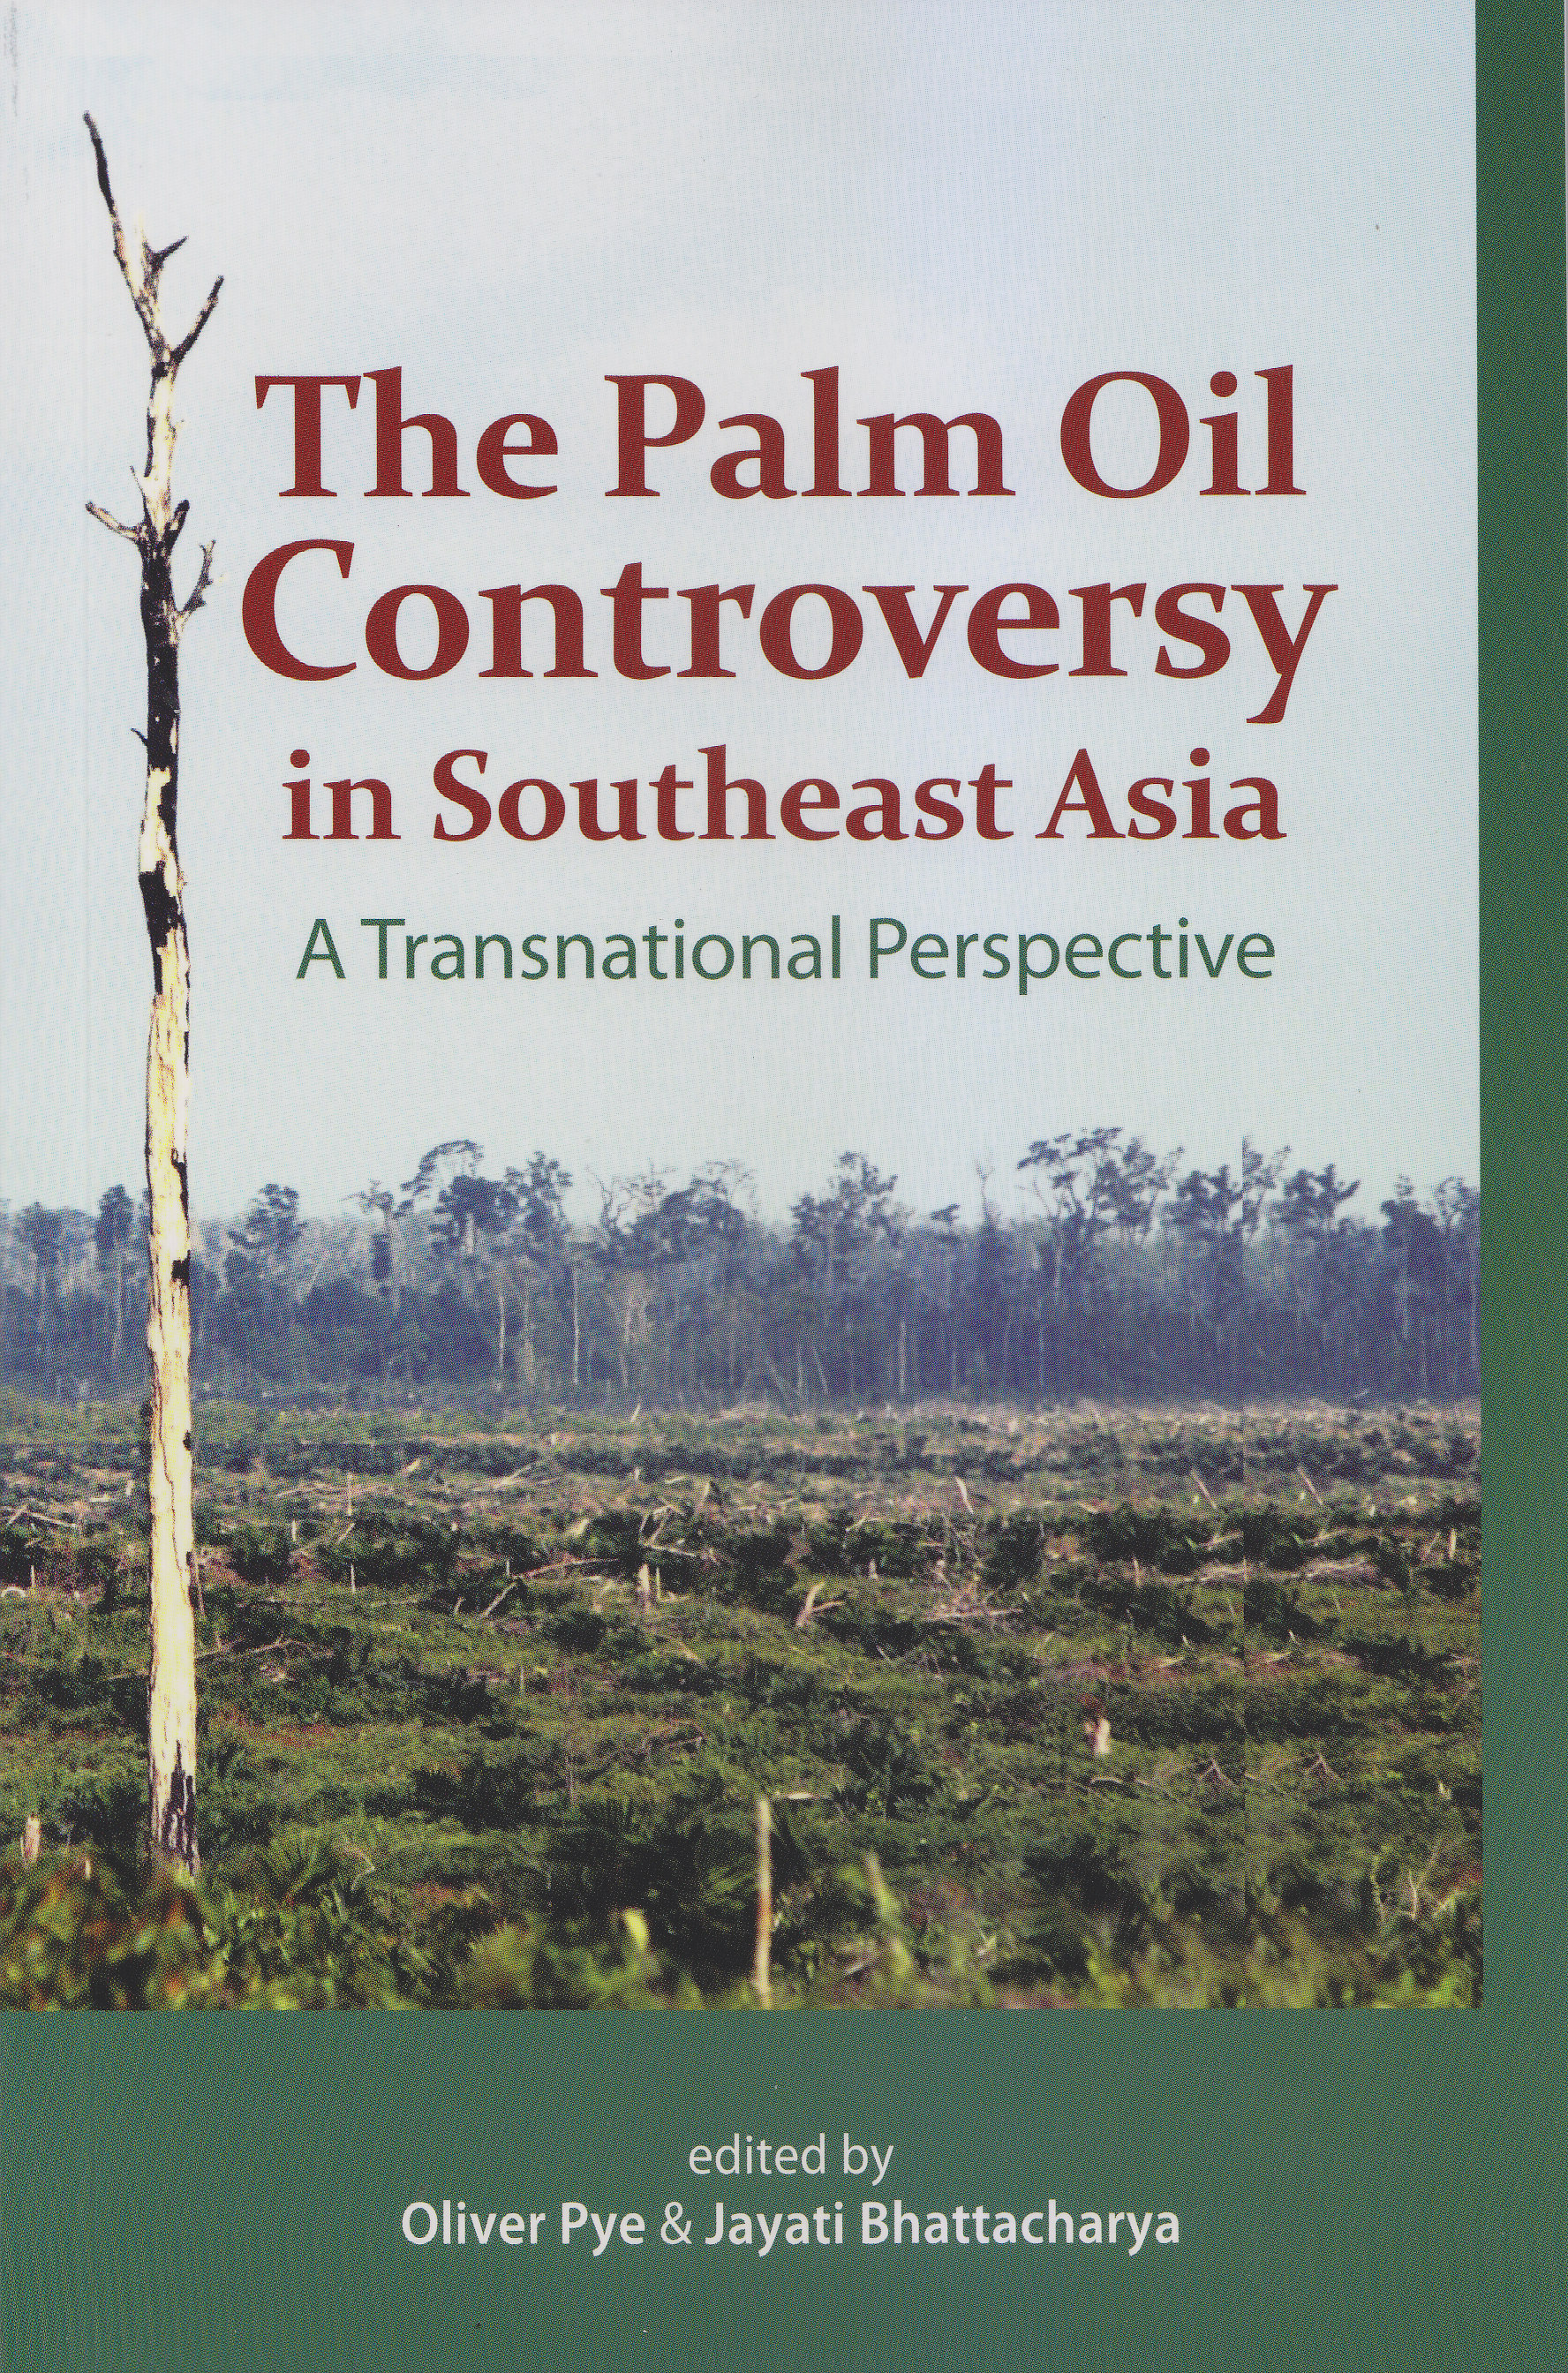 The Palm Oil Controversy in Southeast Asia: A Transitional Perspective